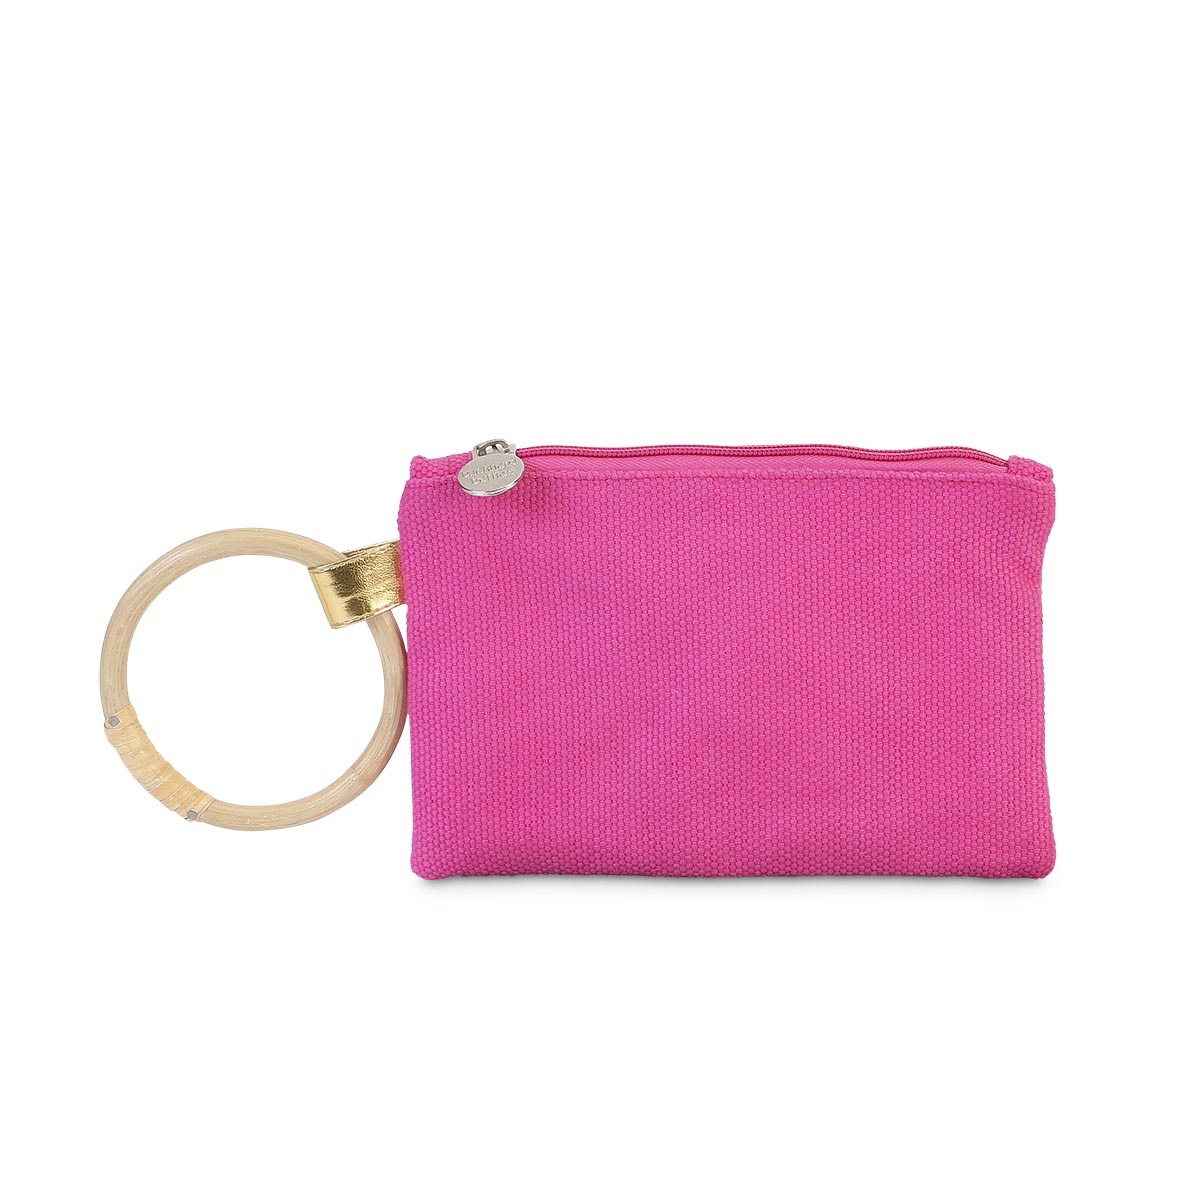 durry wristlet pink, gold trim